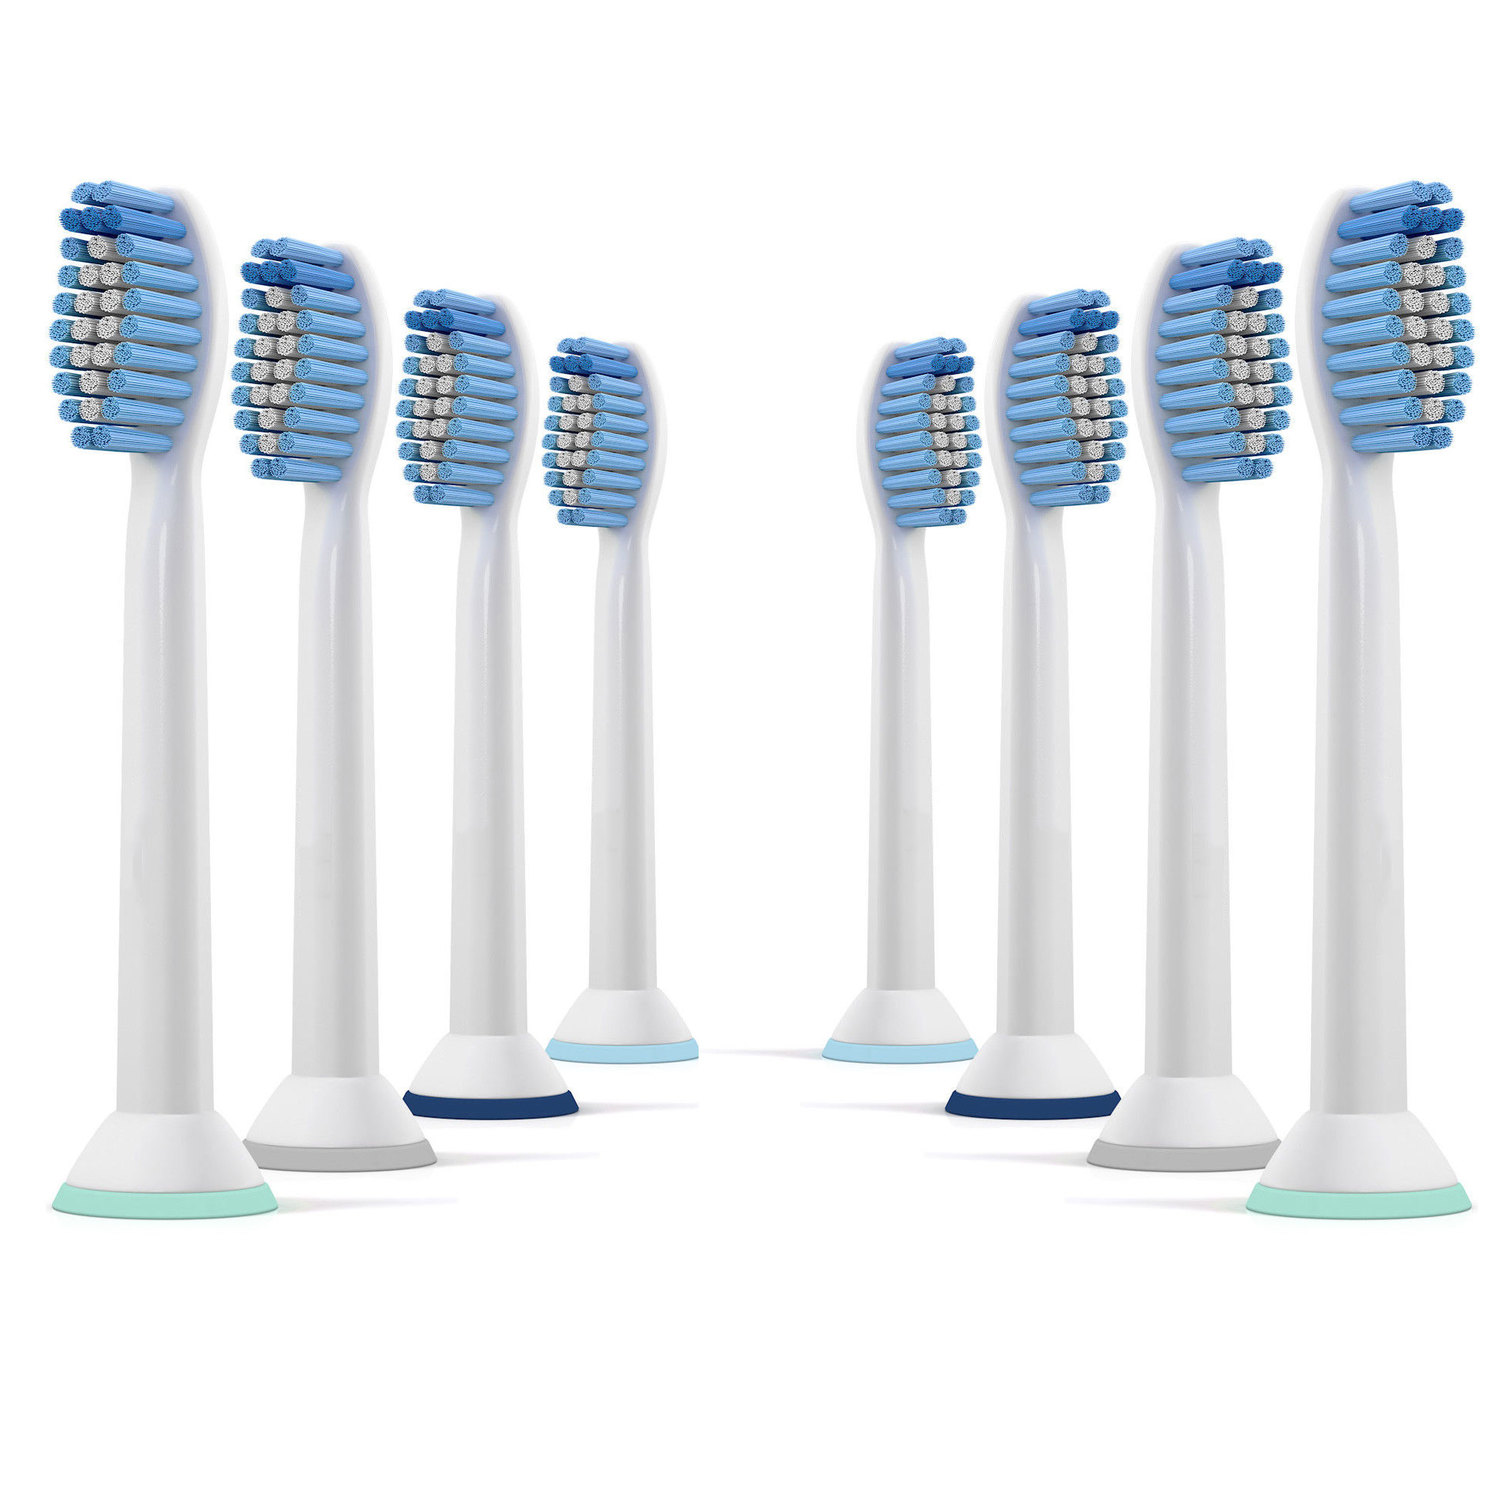 4 8 12pcsTooth Brush Heads Electric Toothbrush Replacement Heads For Philips Sonicare Sensitive Easy Diamond Clean HX6054 image